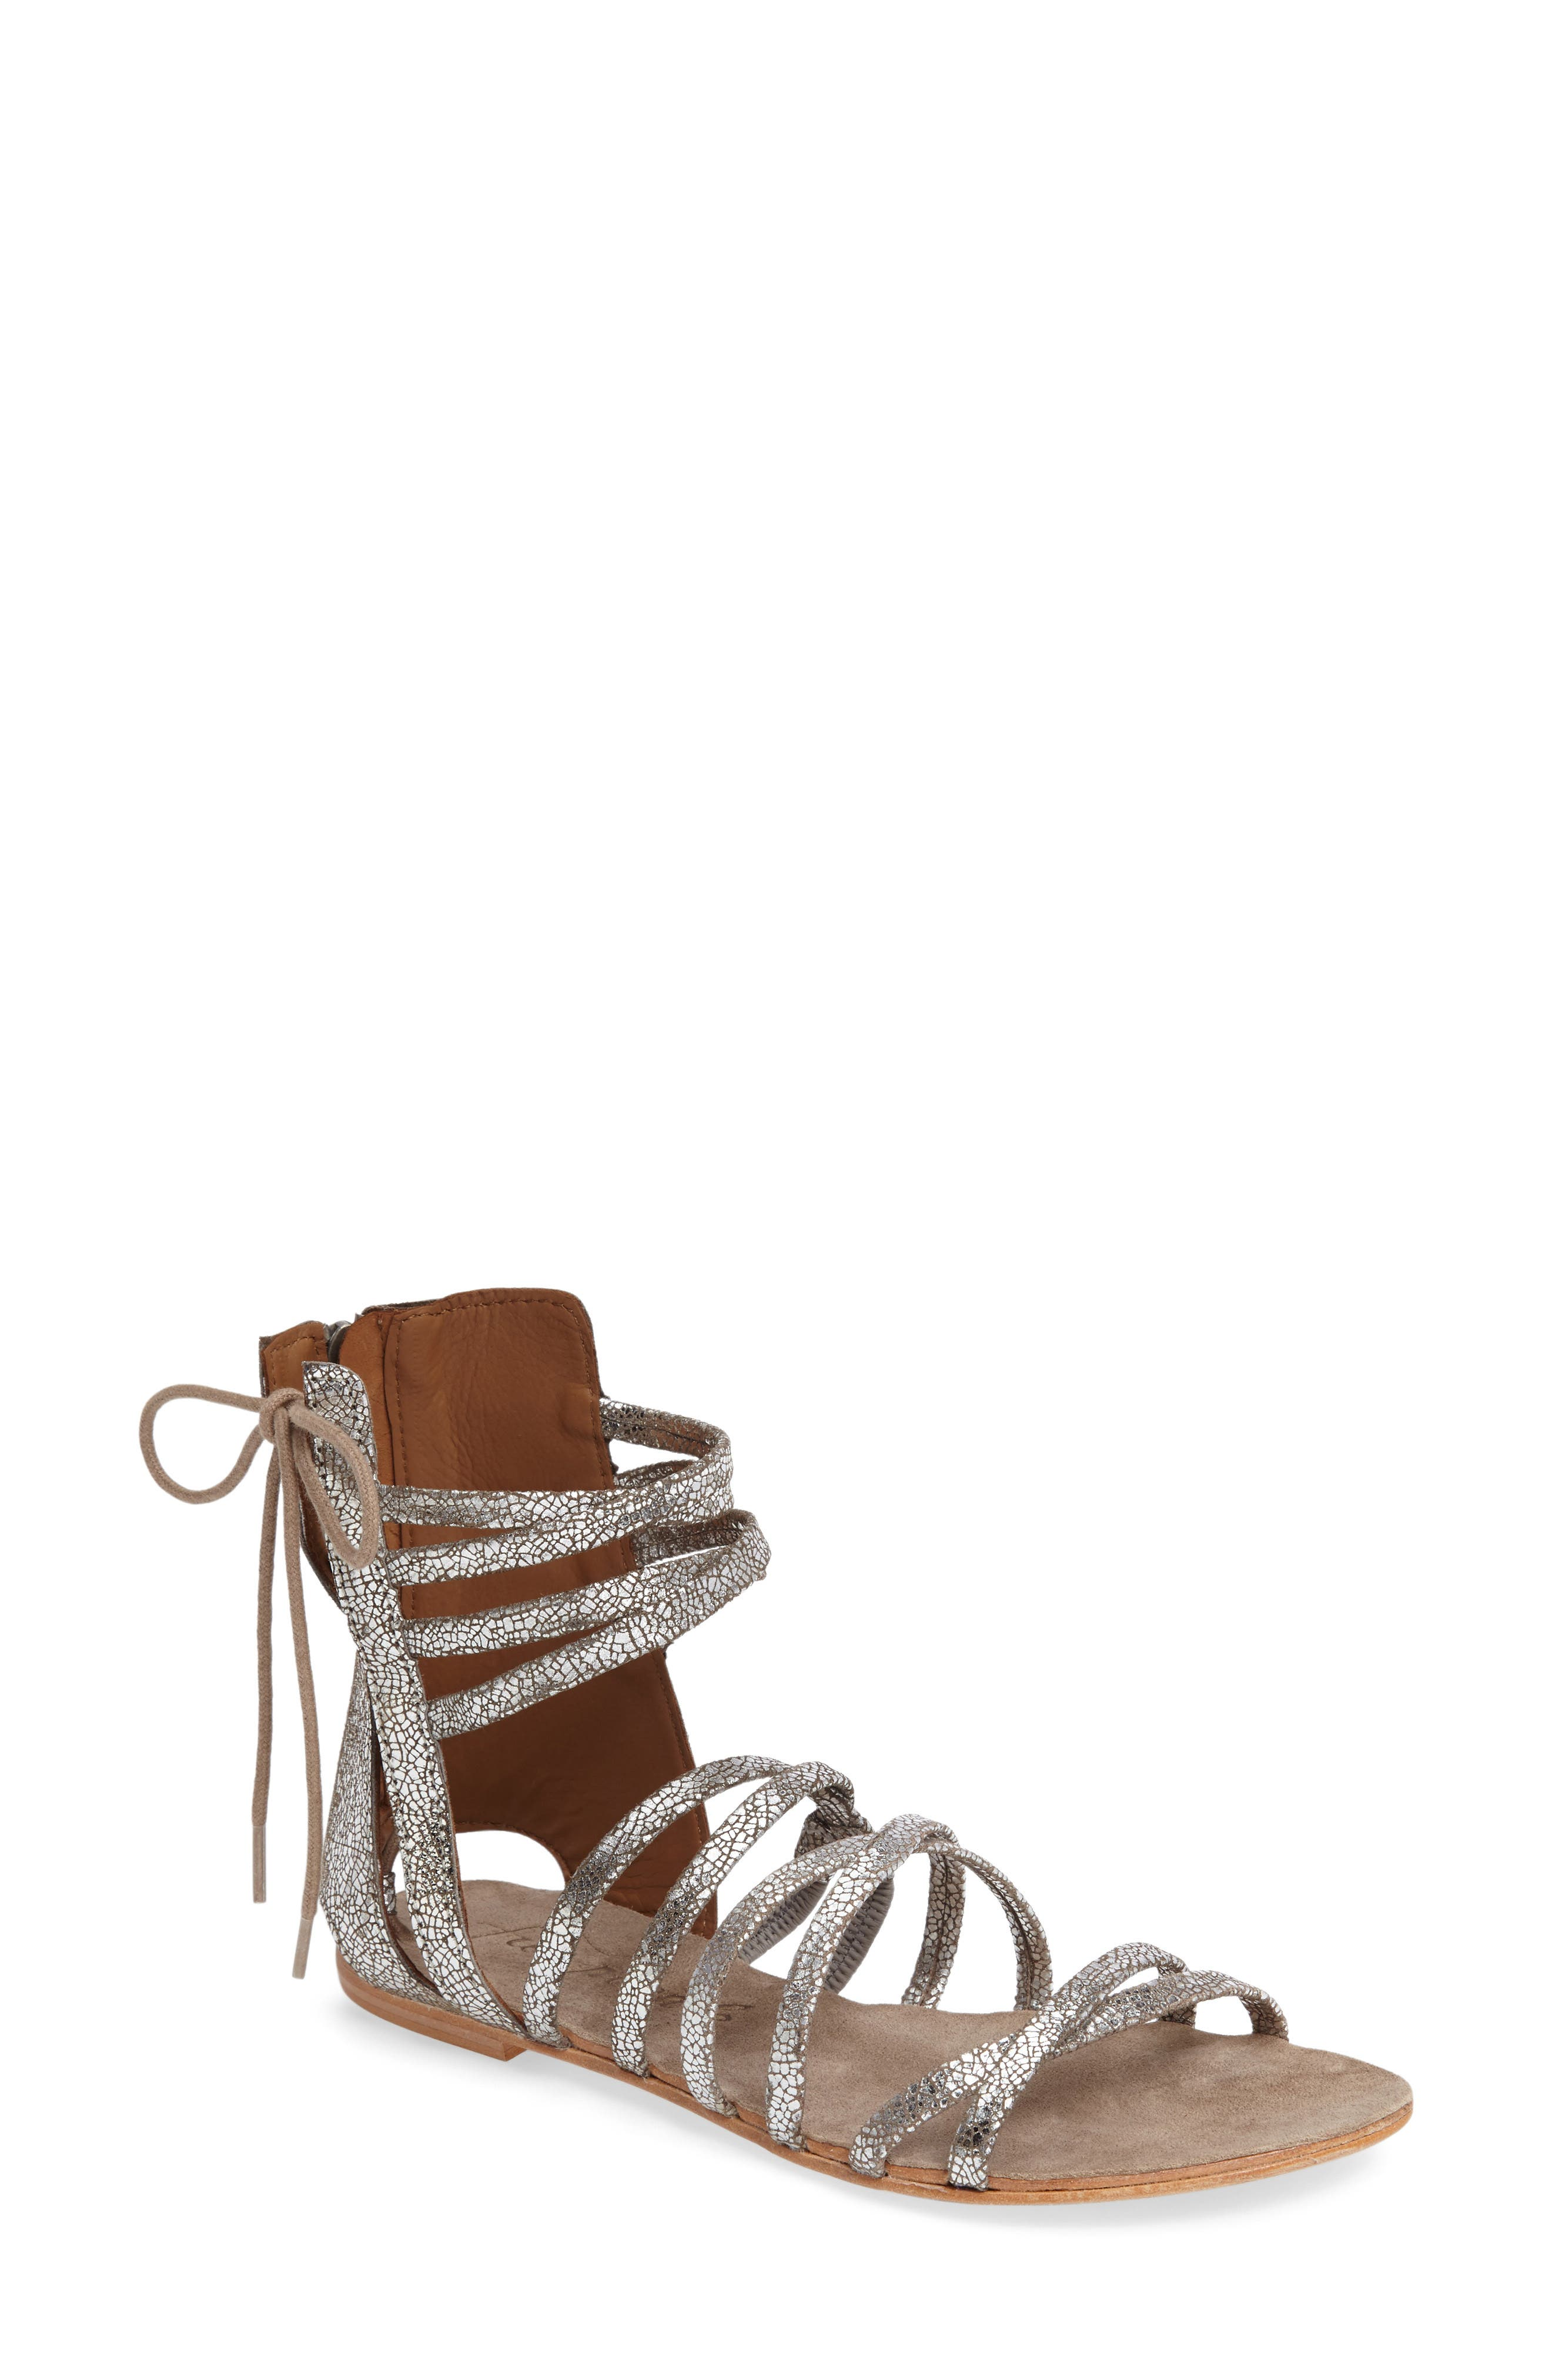 Main Image - Free People Juliette Gladiator Sandal (Women)